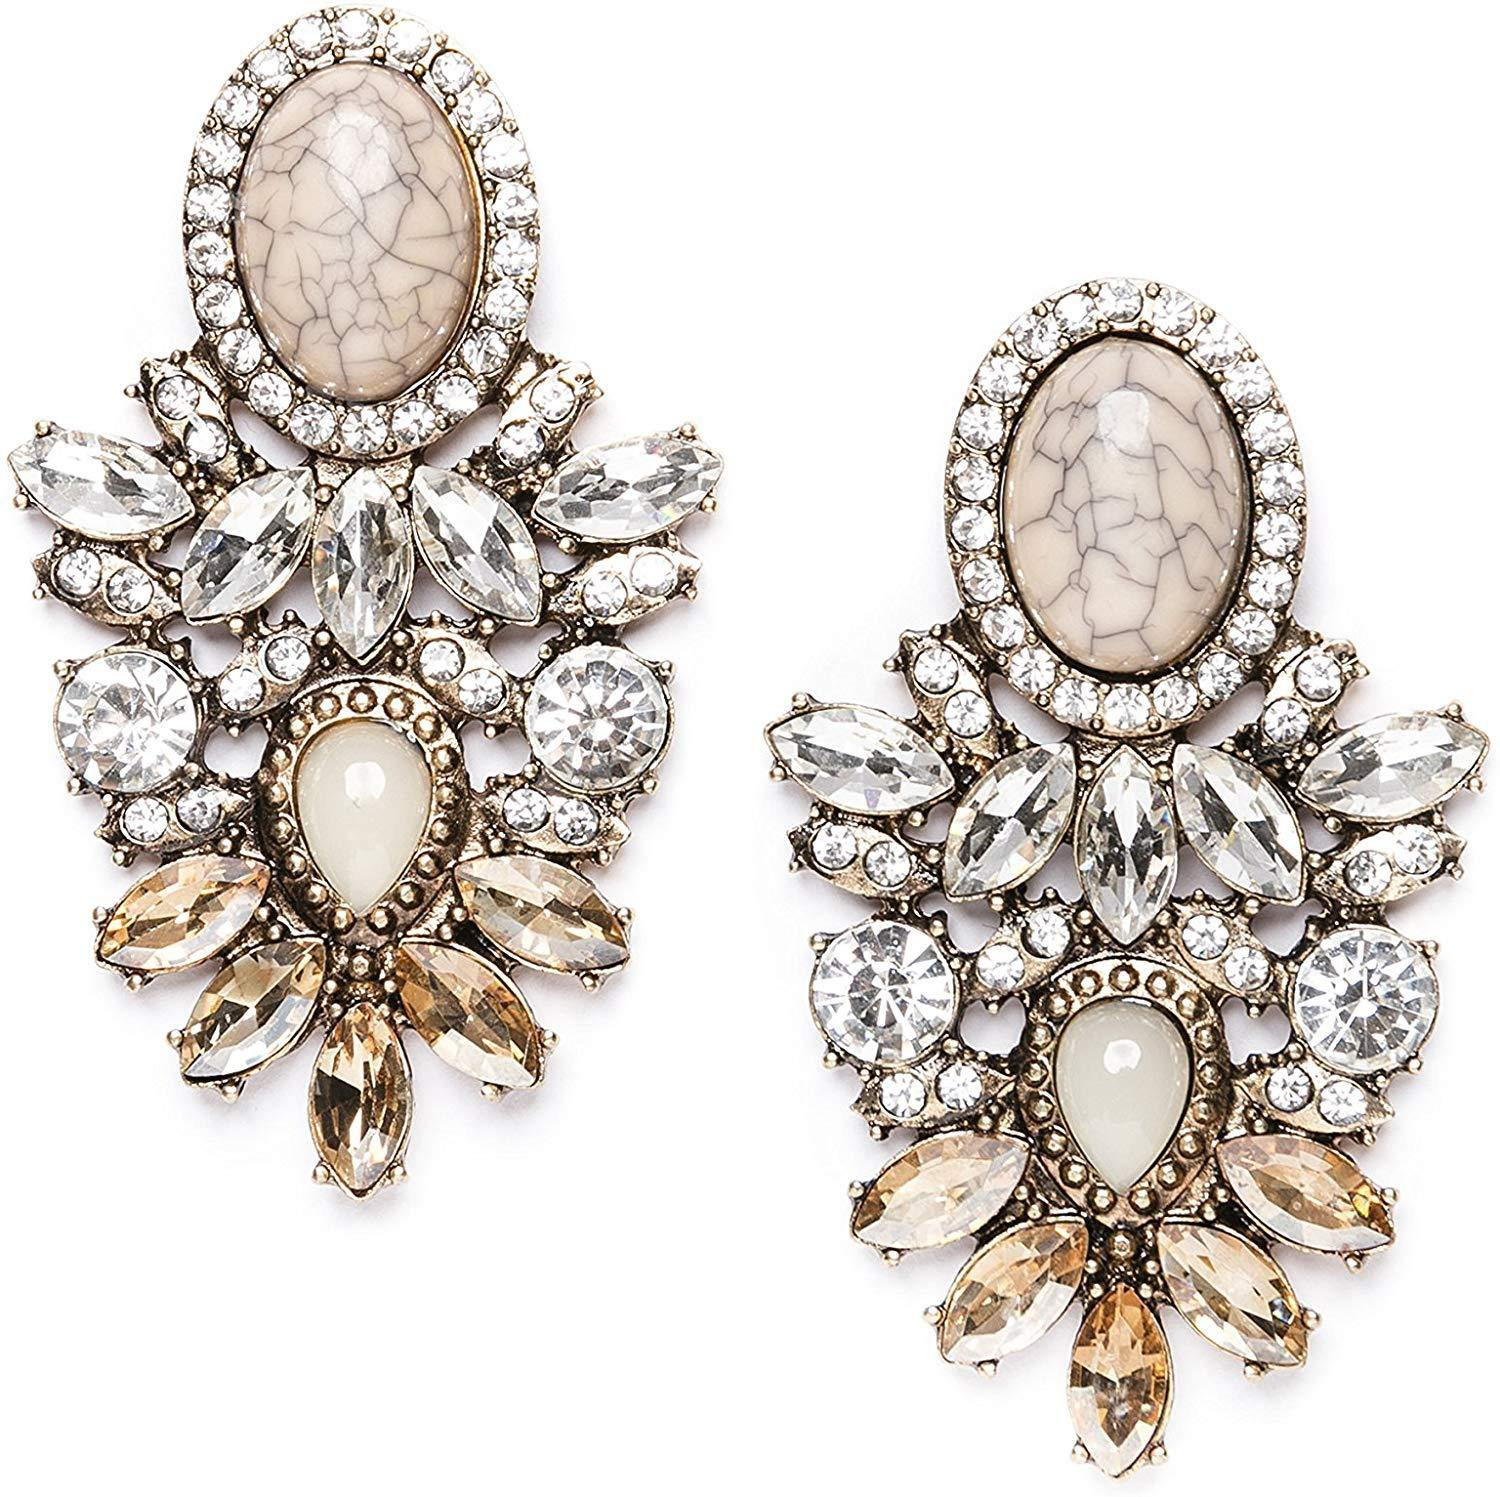 Forever Classy Statement Earrings - Shop Ja'Kai